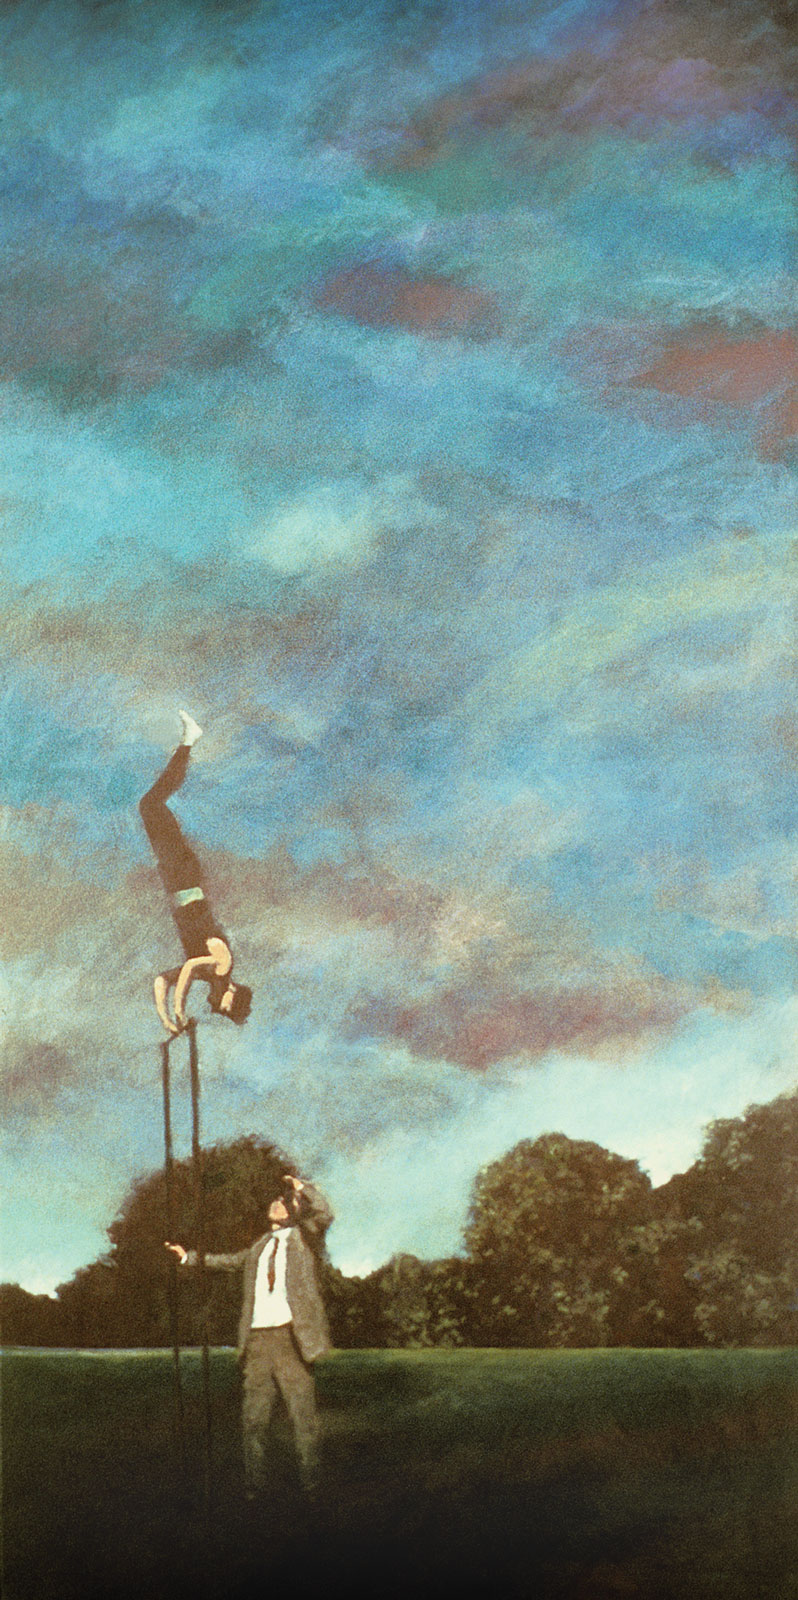 <i>Man on a High Bar</i> (2003), detail,  52˝ × 26˝, acrylic on canvas